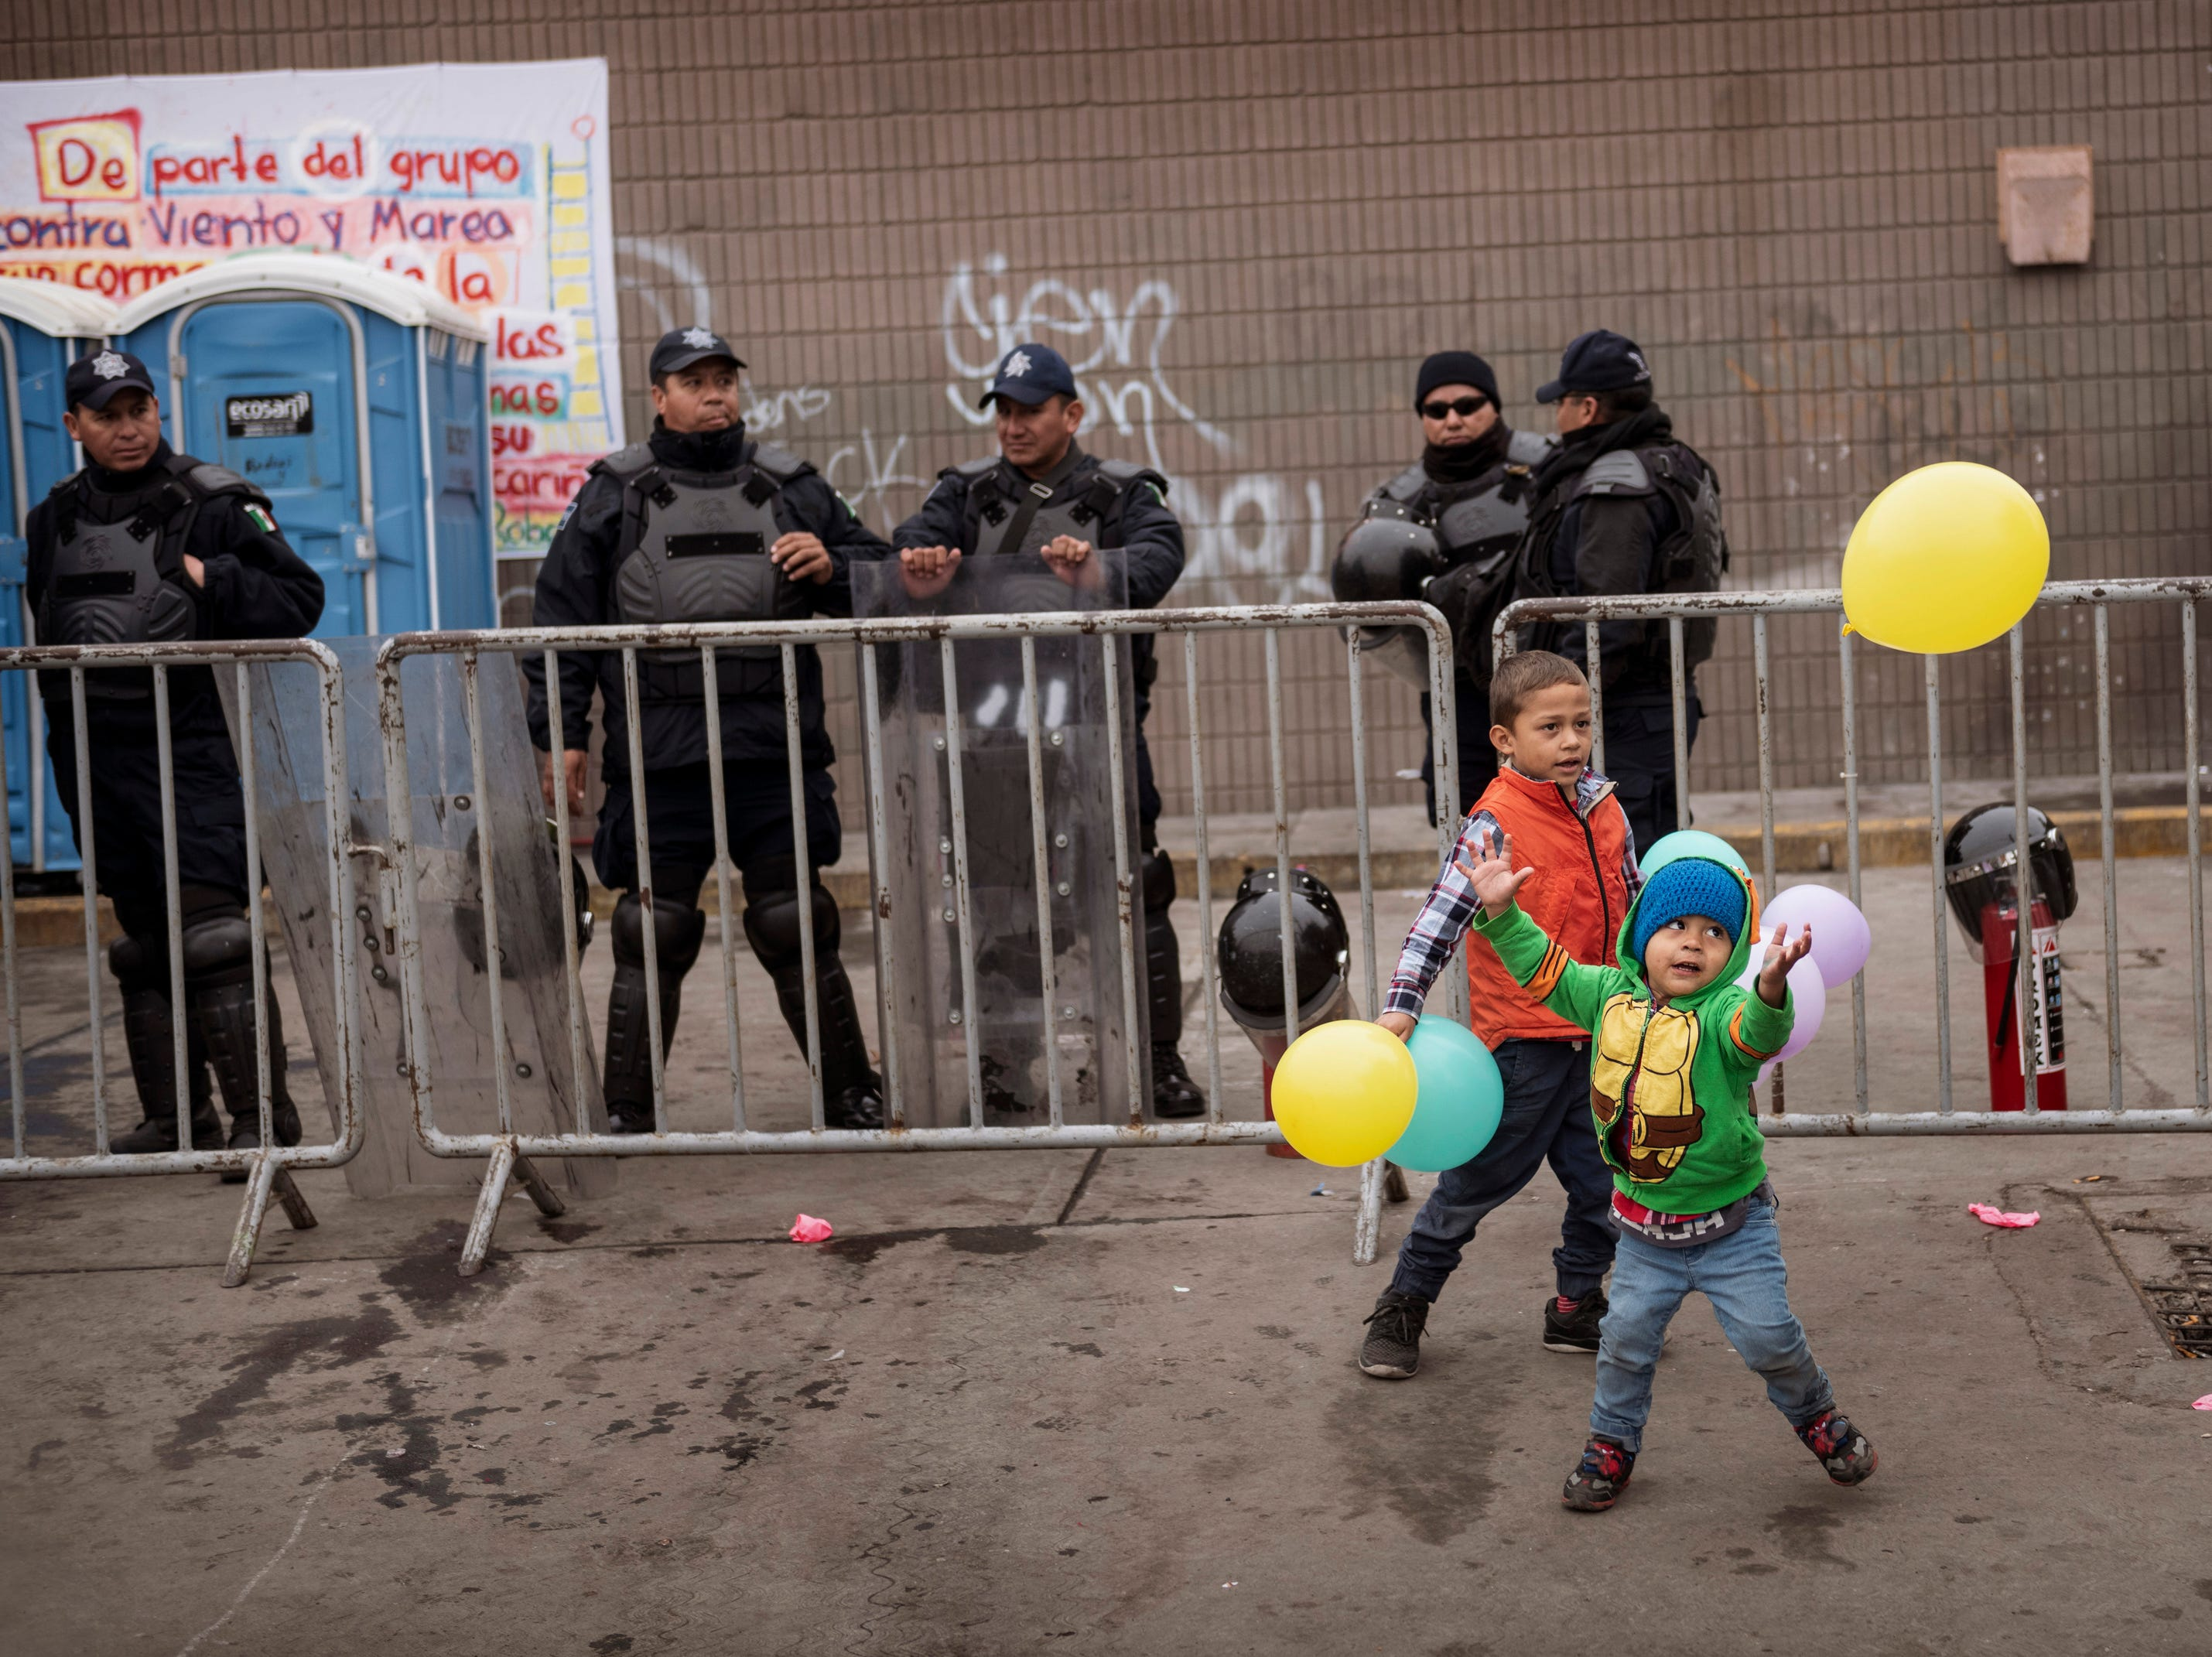 Children play with balloons in front of Federal Police outside an empty warehouse used as a shelter set up for migrants in downtown Tijuana, Mexico, Saturday, Jan. 5, 2019. Authorities ordered the shelter to be closed due to sanitary conditions. Discouraged by the long wait to apply for asylum through official ports of entry, many migrants from recent caravans are choosing to cross the U.S. border wall and hand themselves in to border patrol agents.